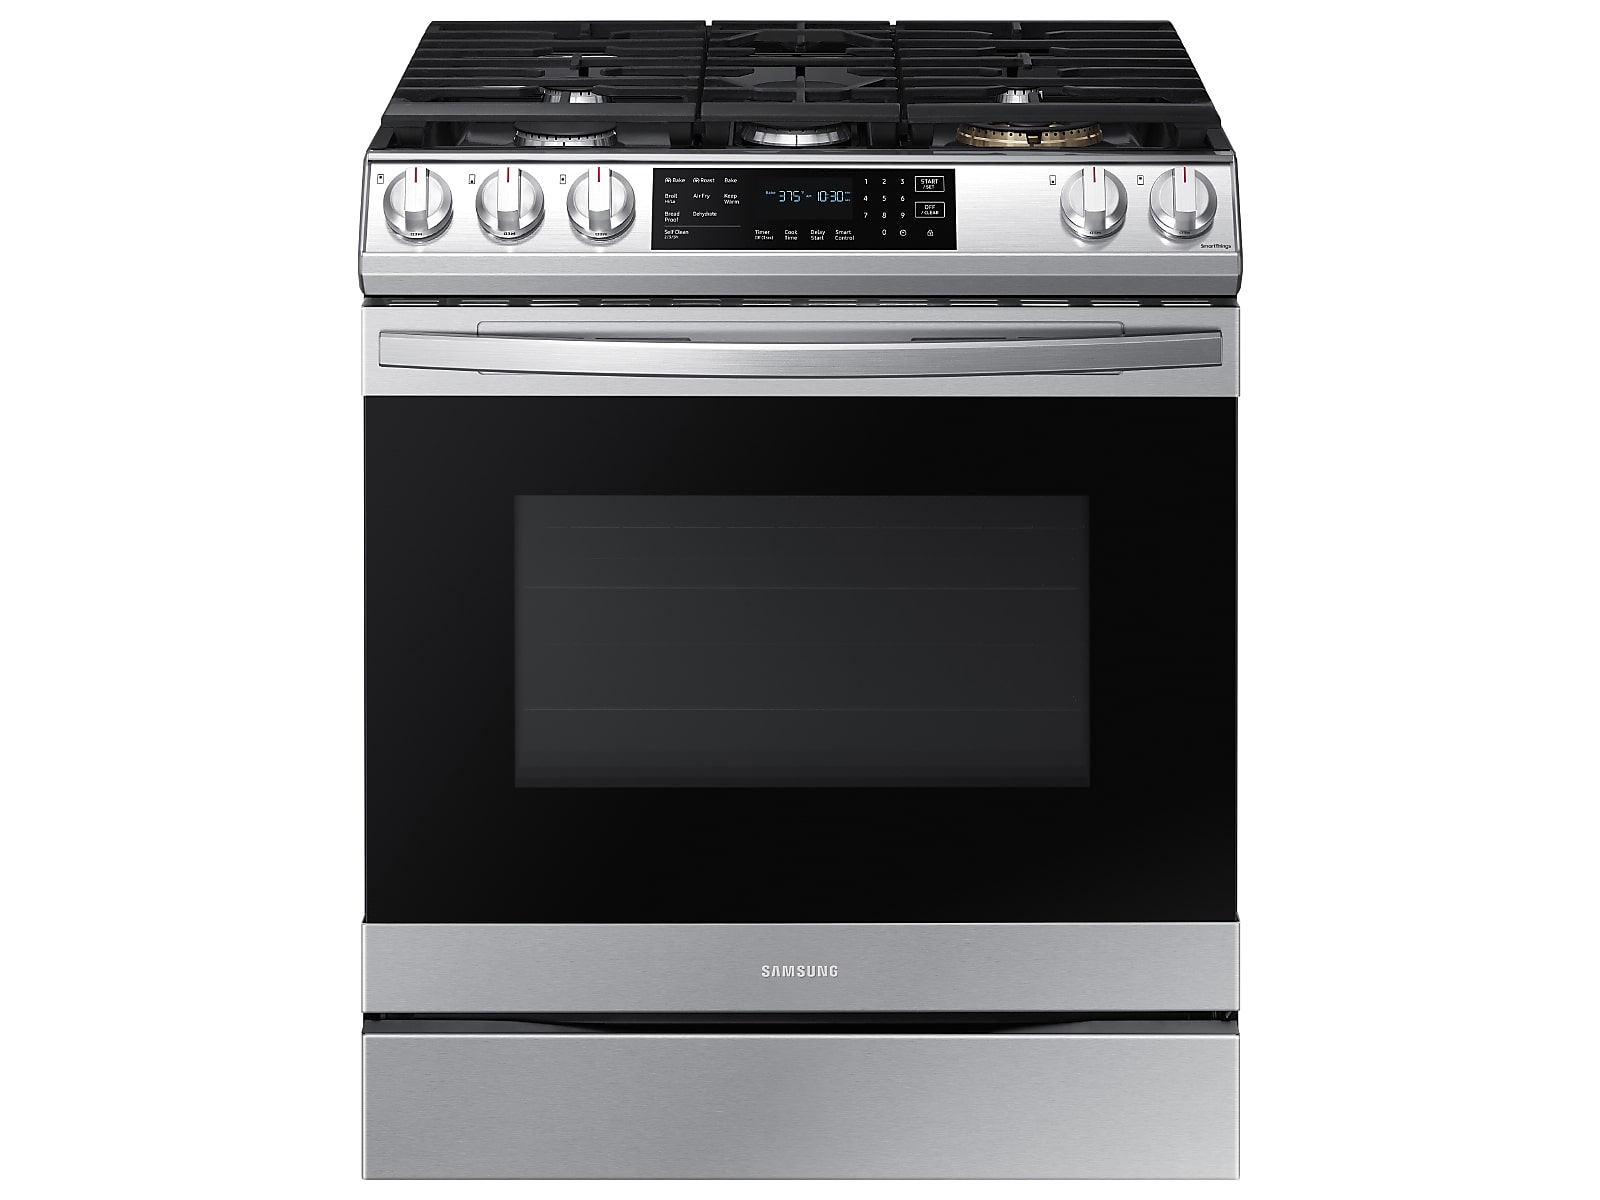 Samsung 6.0 cu. ft. Smart Slide-in Gas Range with Air Fry in Silver(NX60T8511SS/AA)